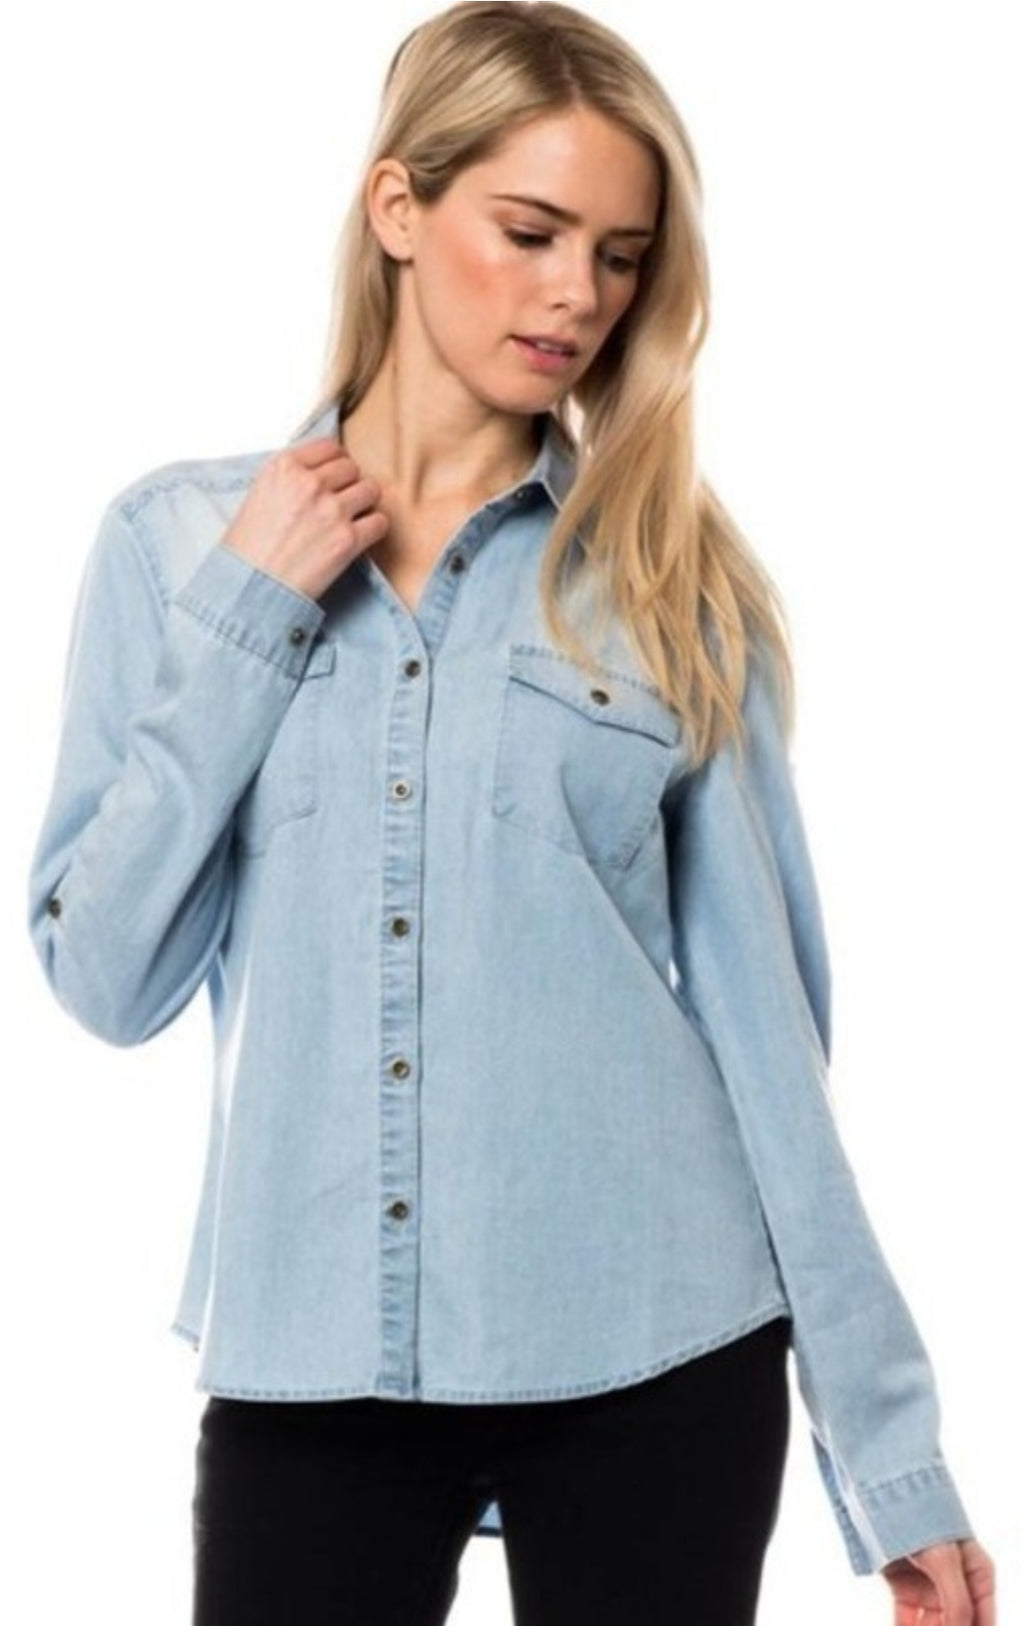 Chambray Shirt in Light Blue